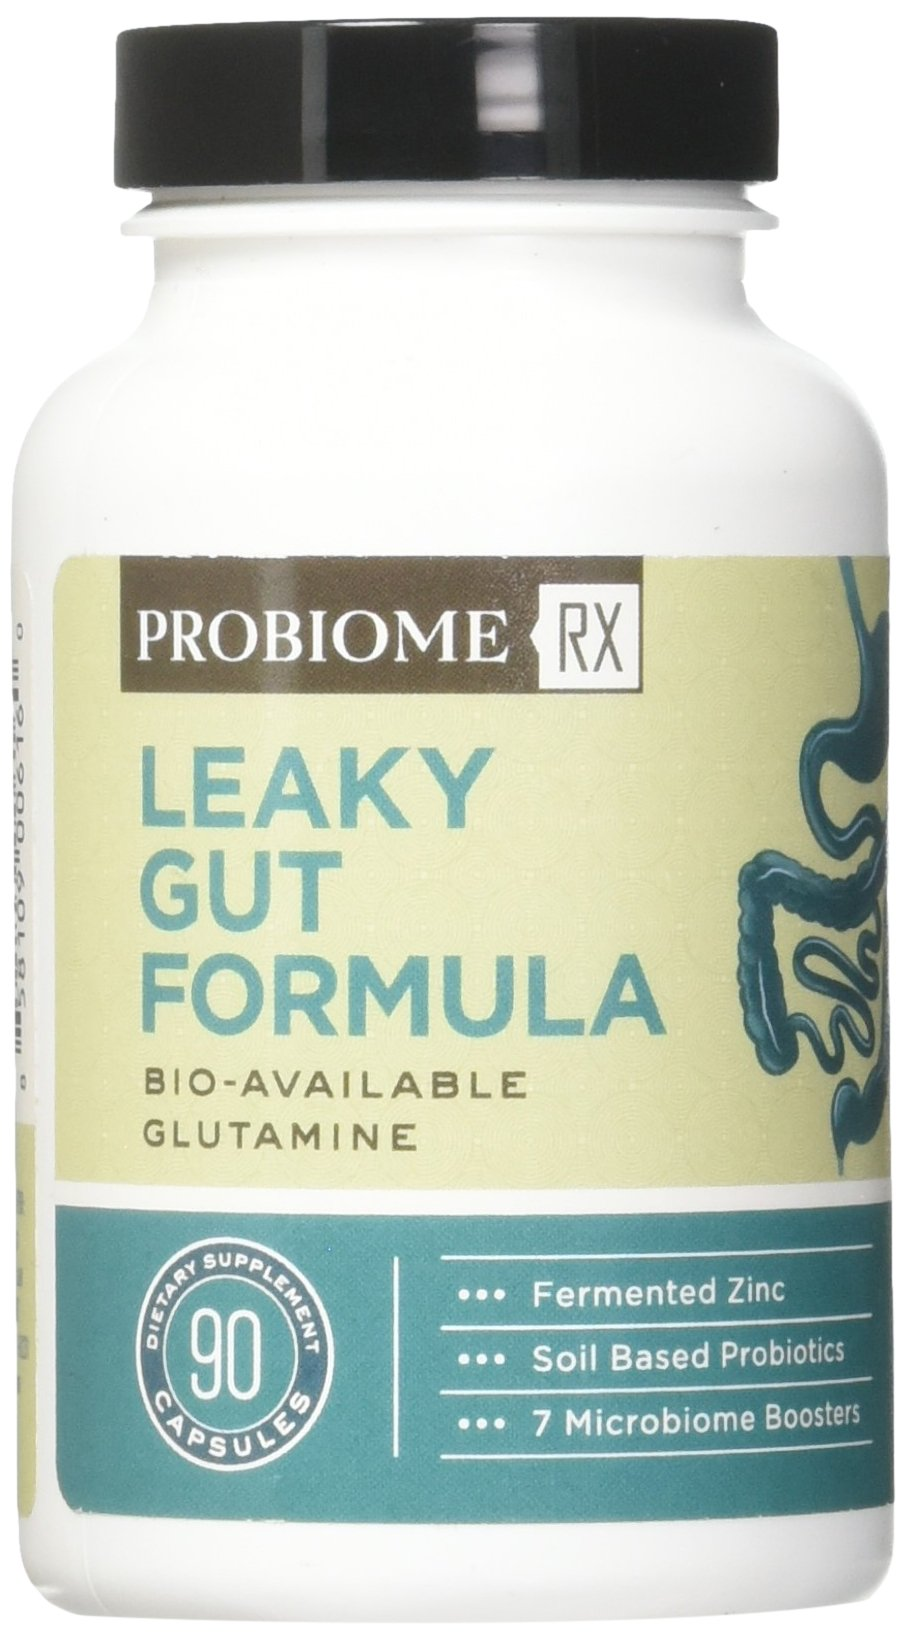 ProBiome Rx Leaky Gut Formula Supplements, 90 Count - with Gut-Integrity Blend of L-Glutamine and Licorice Root